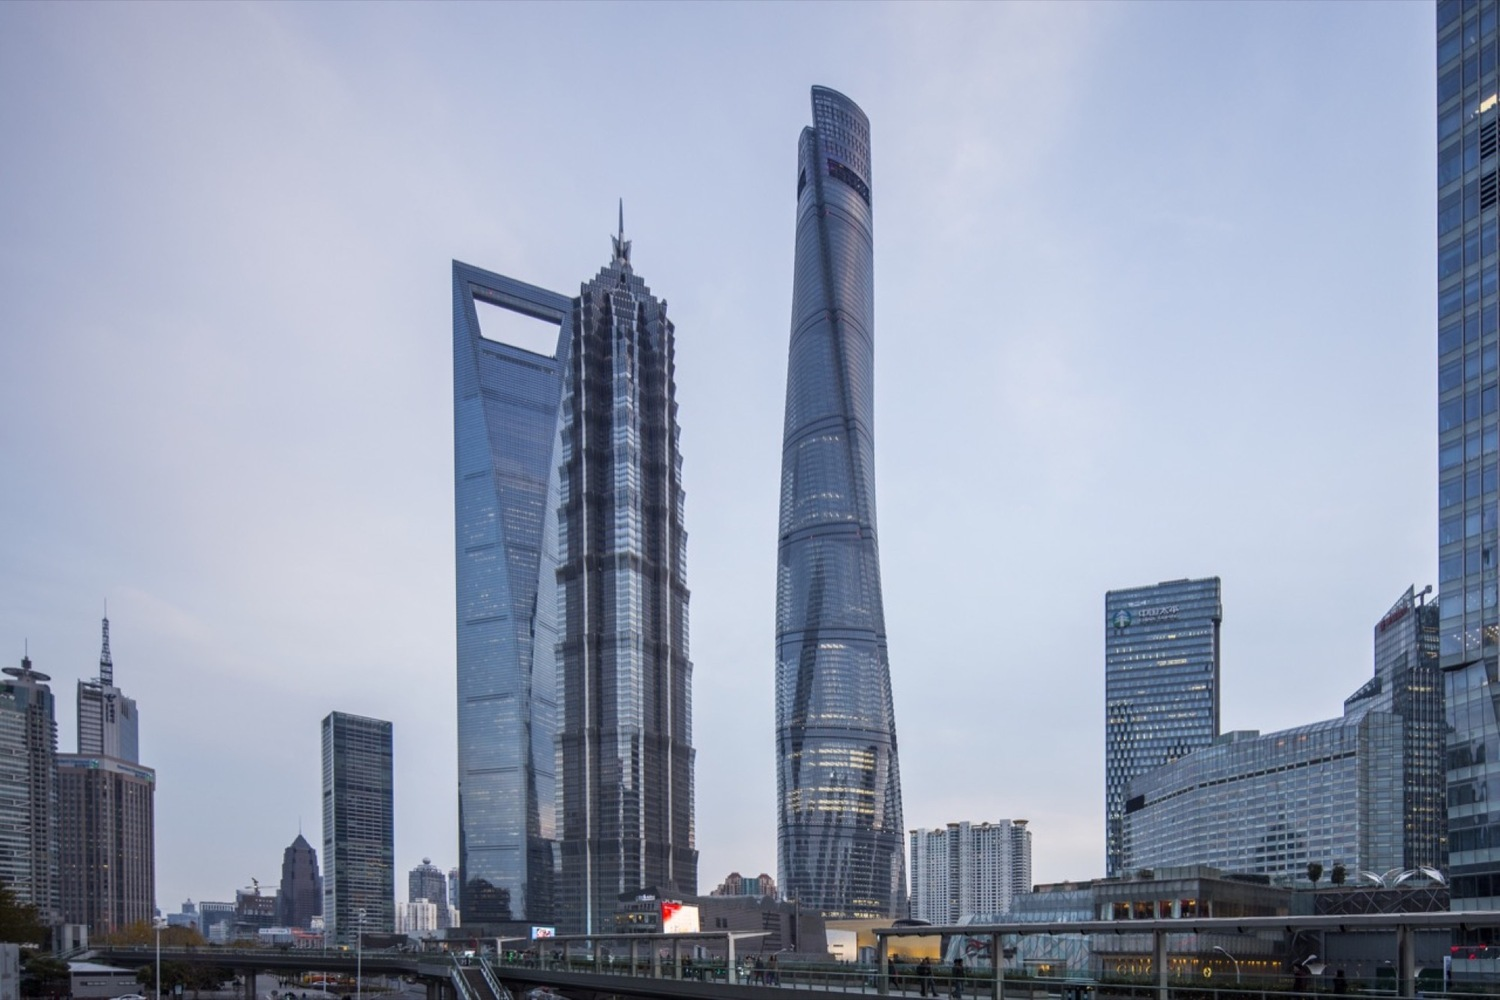 Glass-finish-of-choice-for-skyscrapers-igs magazine-opinion-4